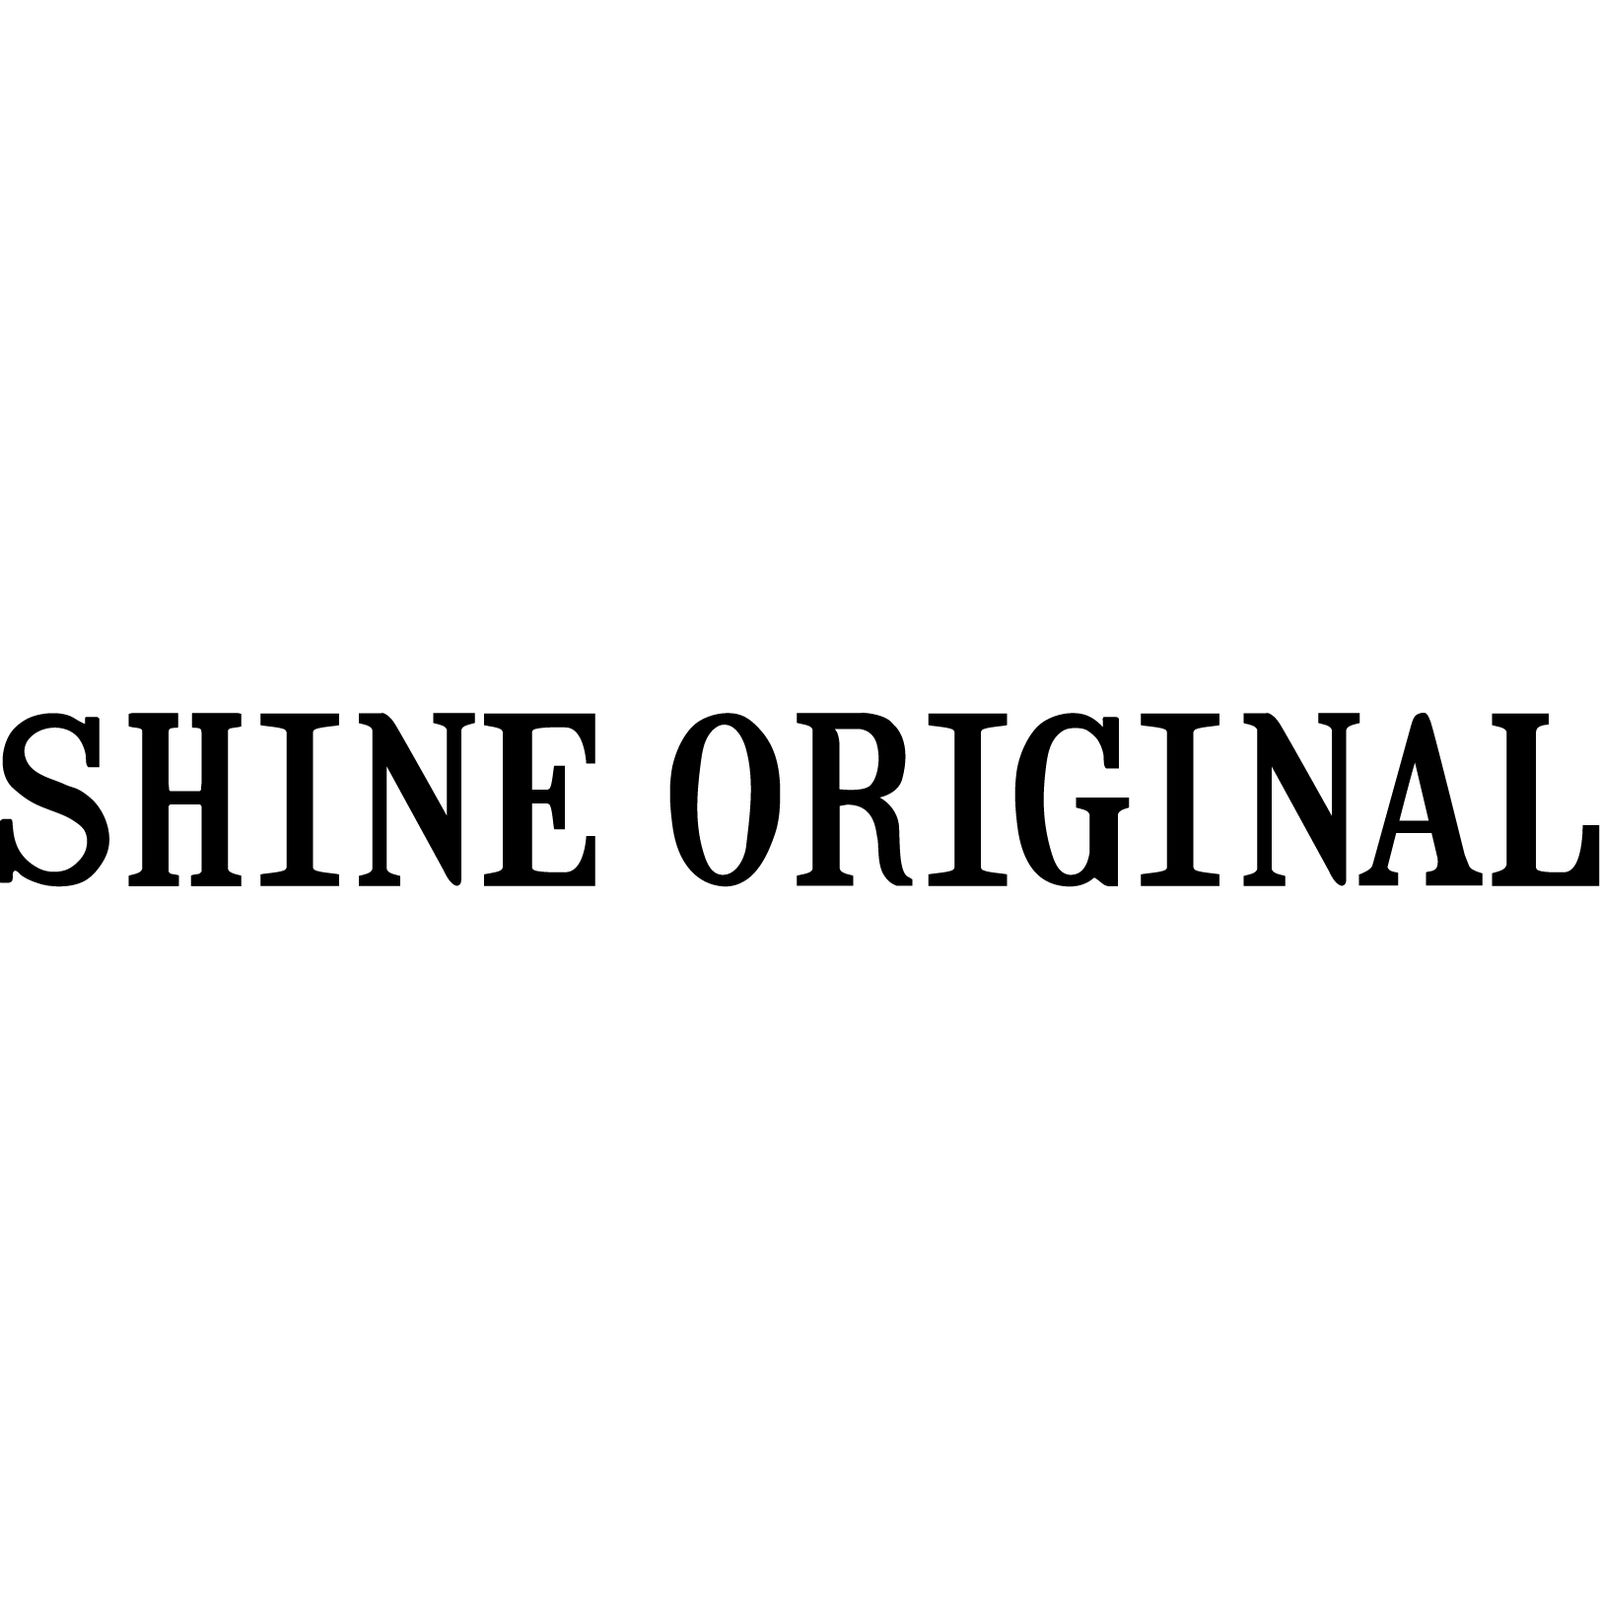 SHINE ORIGINALS